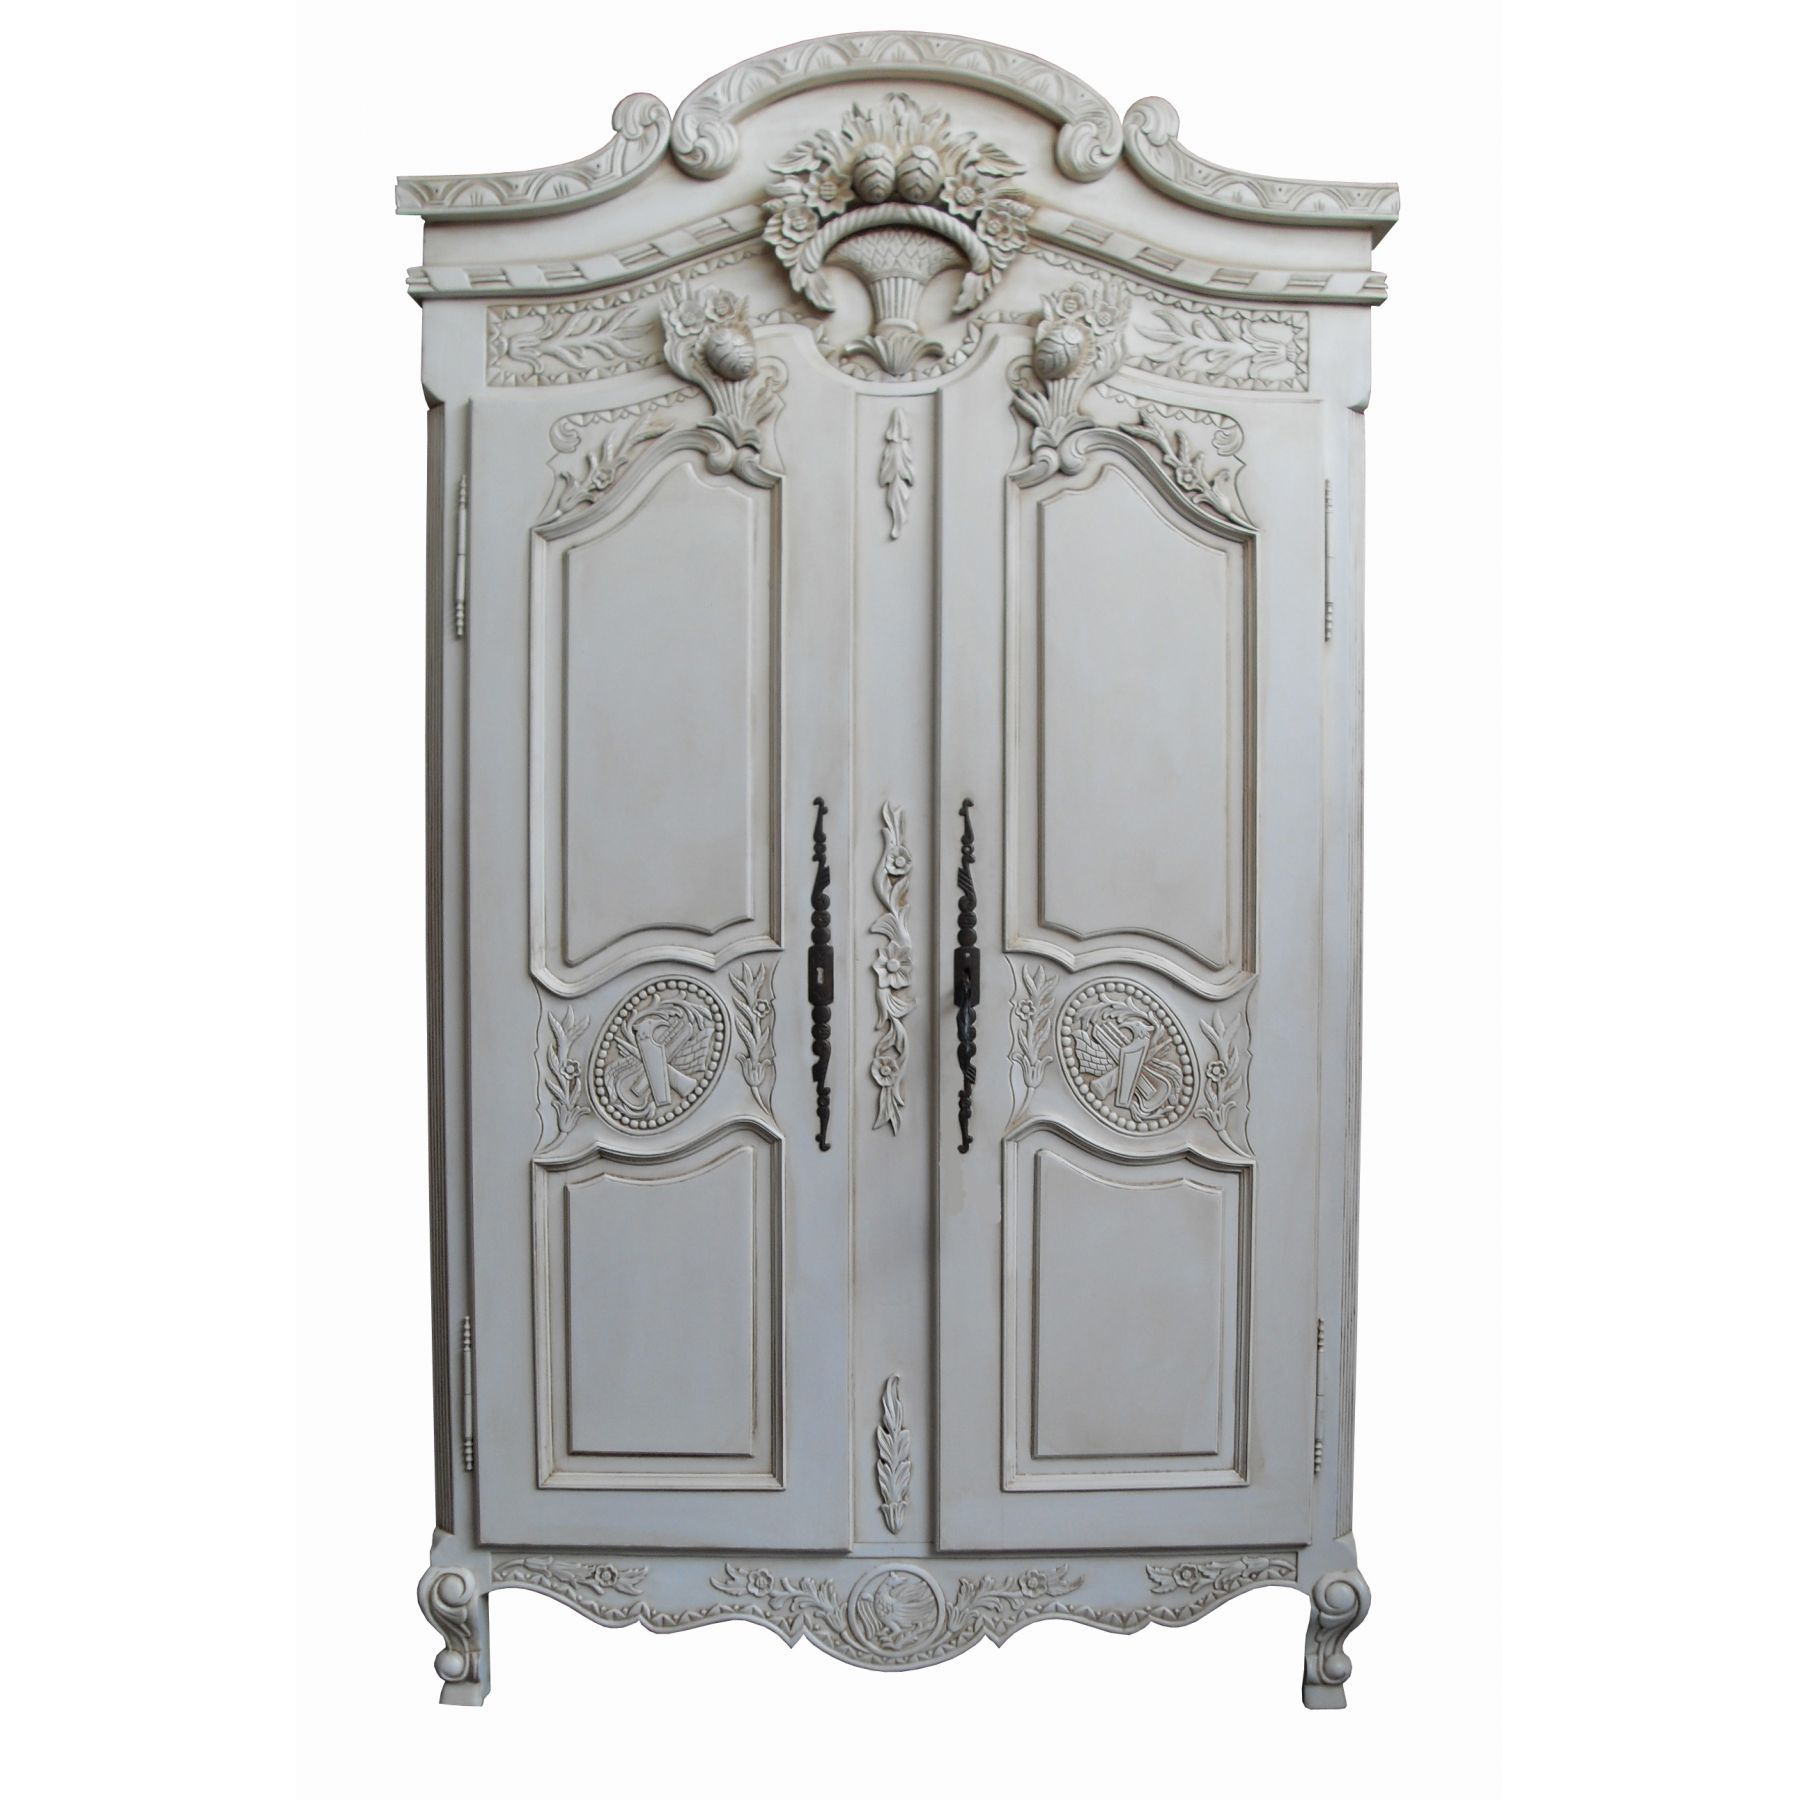 door vintage antique gold royal wooden armoire painting buy retro furniture two detail wardrobe luxury product palace lacquer wardrobes bedroom